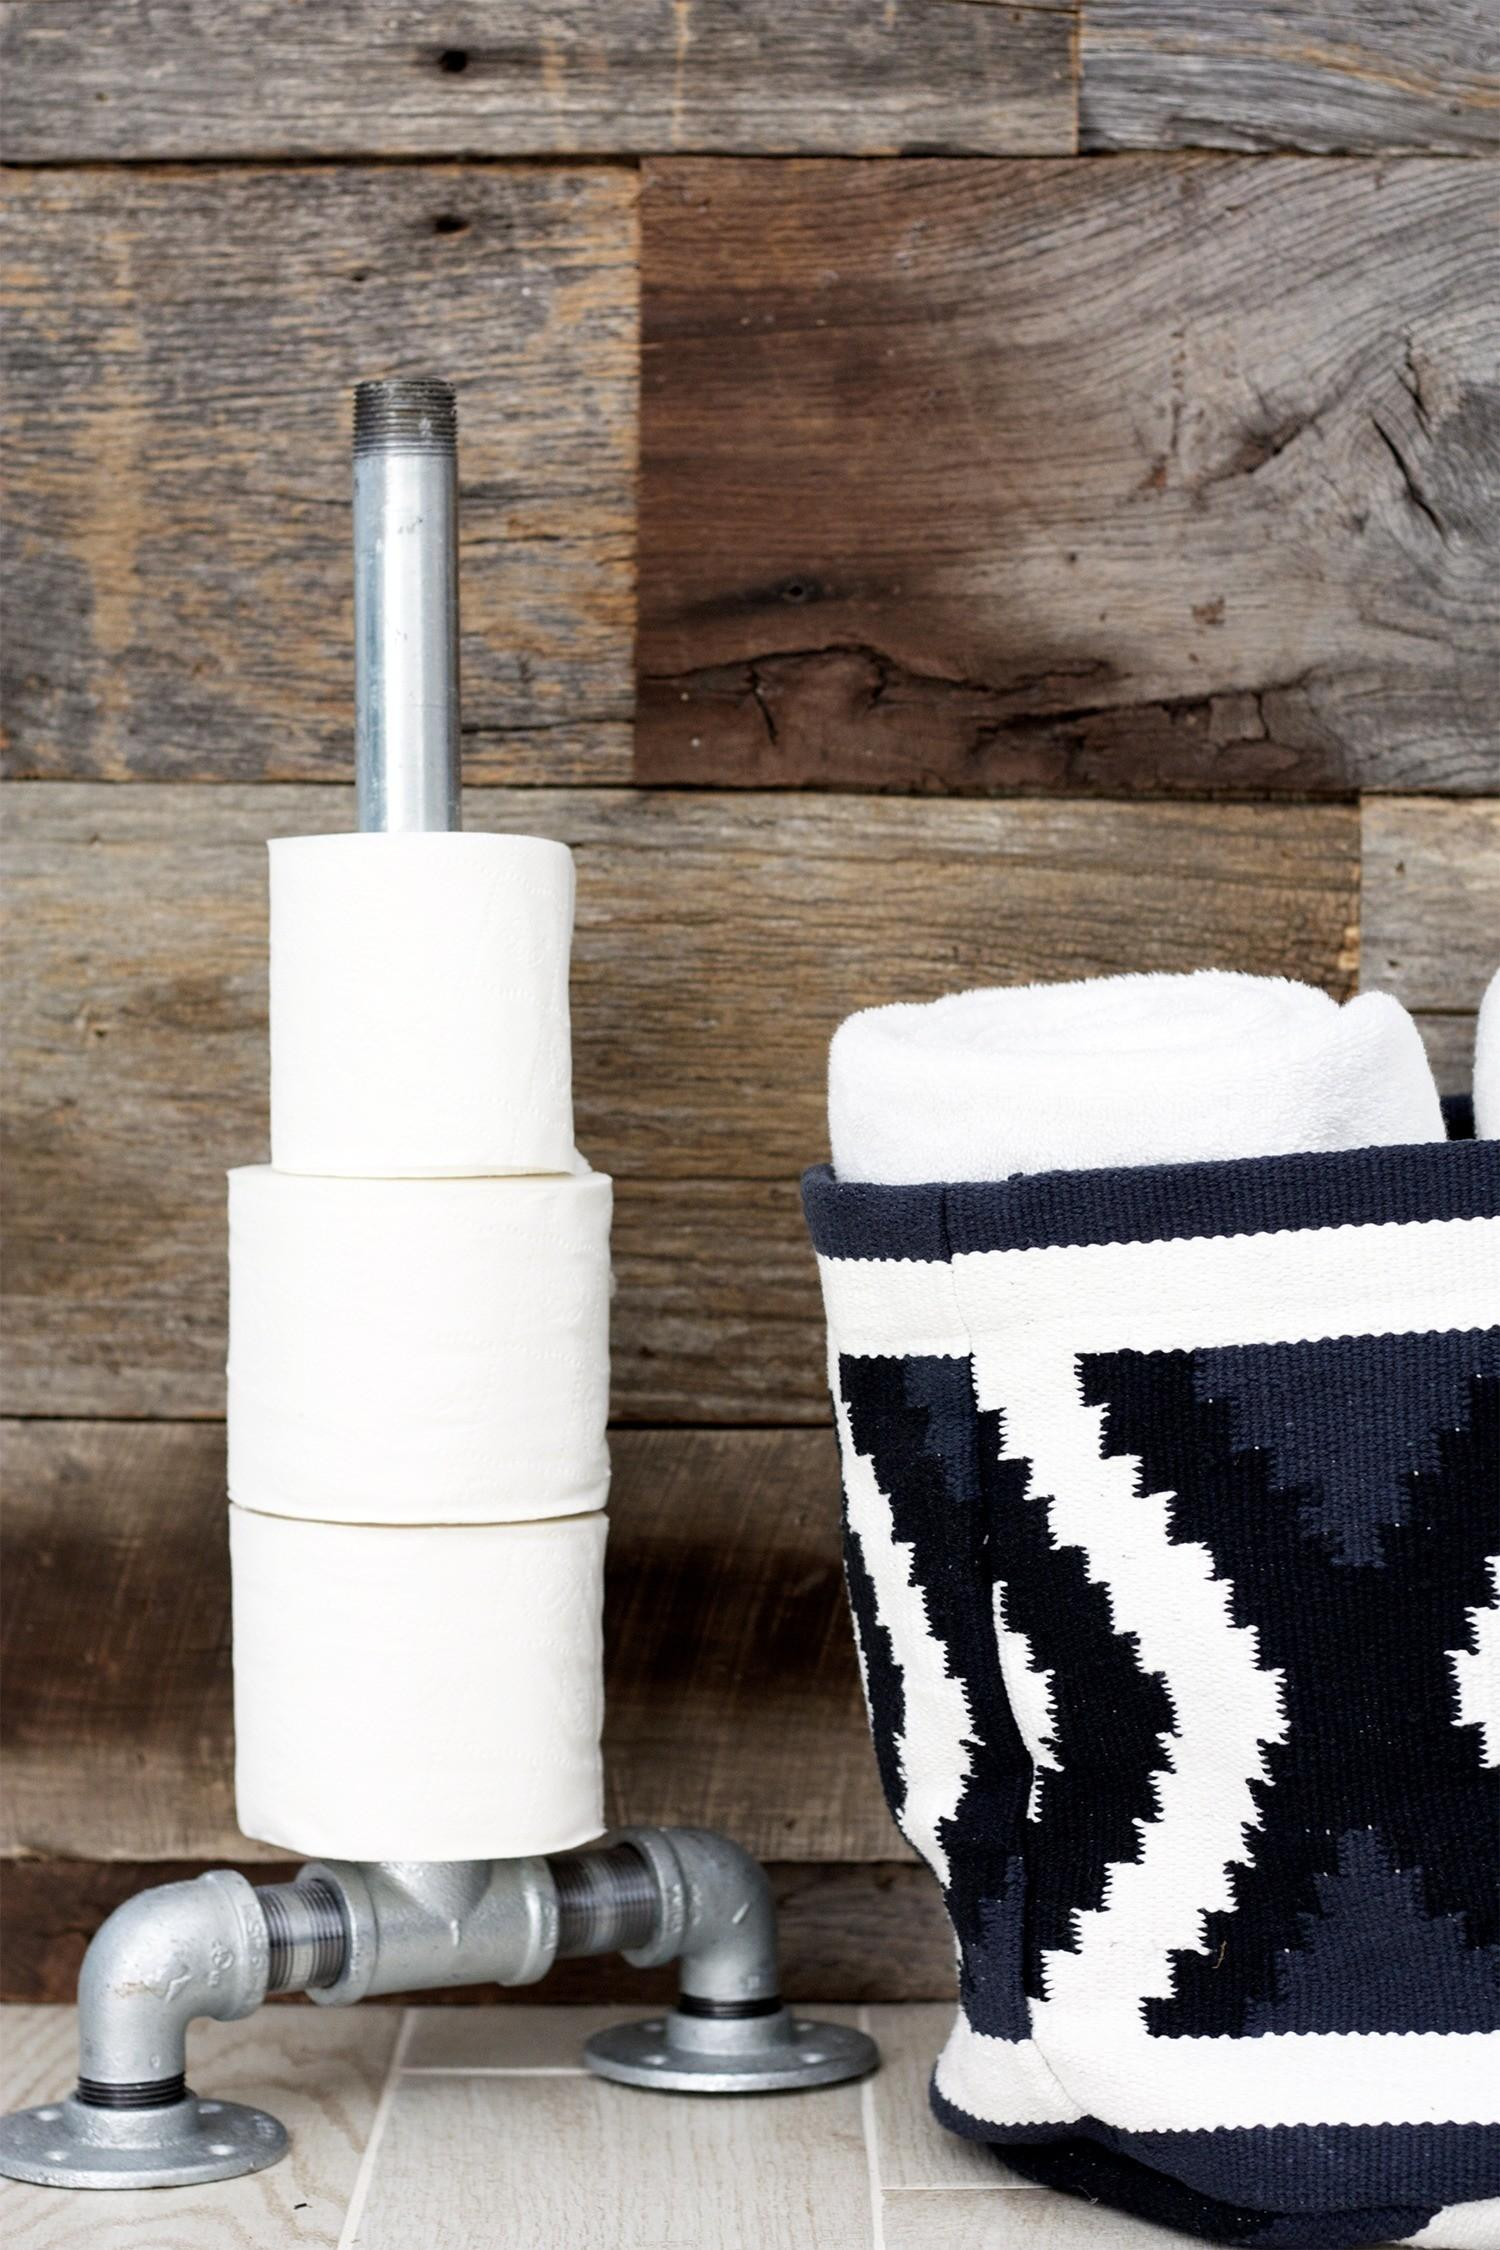 Totally Unusual Diy Toilet Paper Holders Homelovr